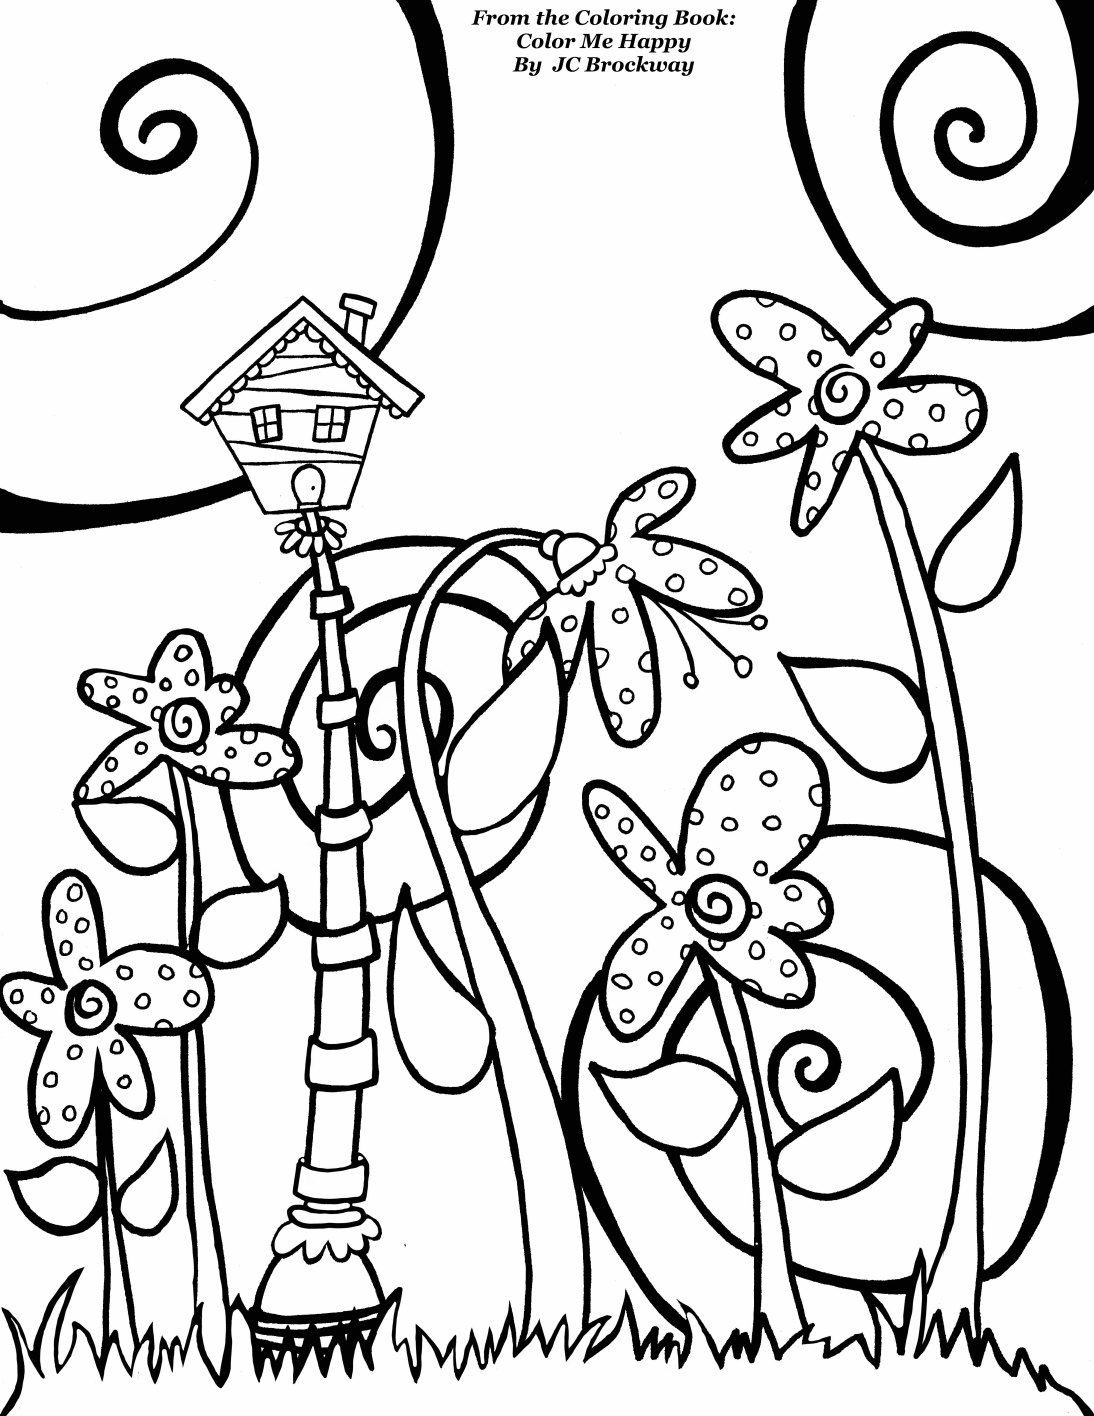 free printable birdhouse coloring pages free printable coloring and activity pages help the bird free pages coloring printable birdhouse